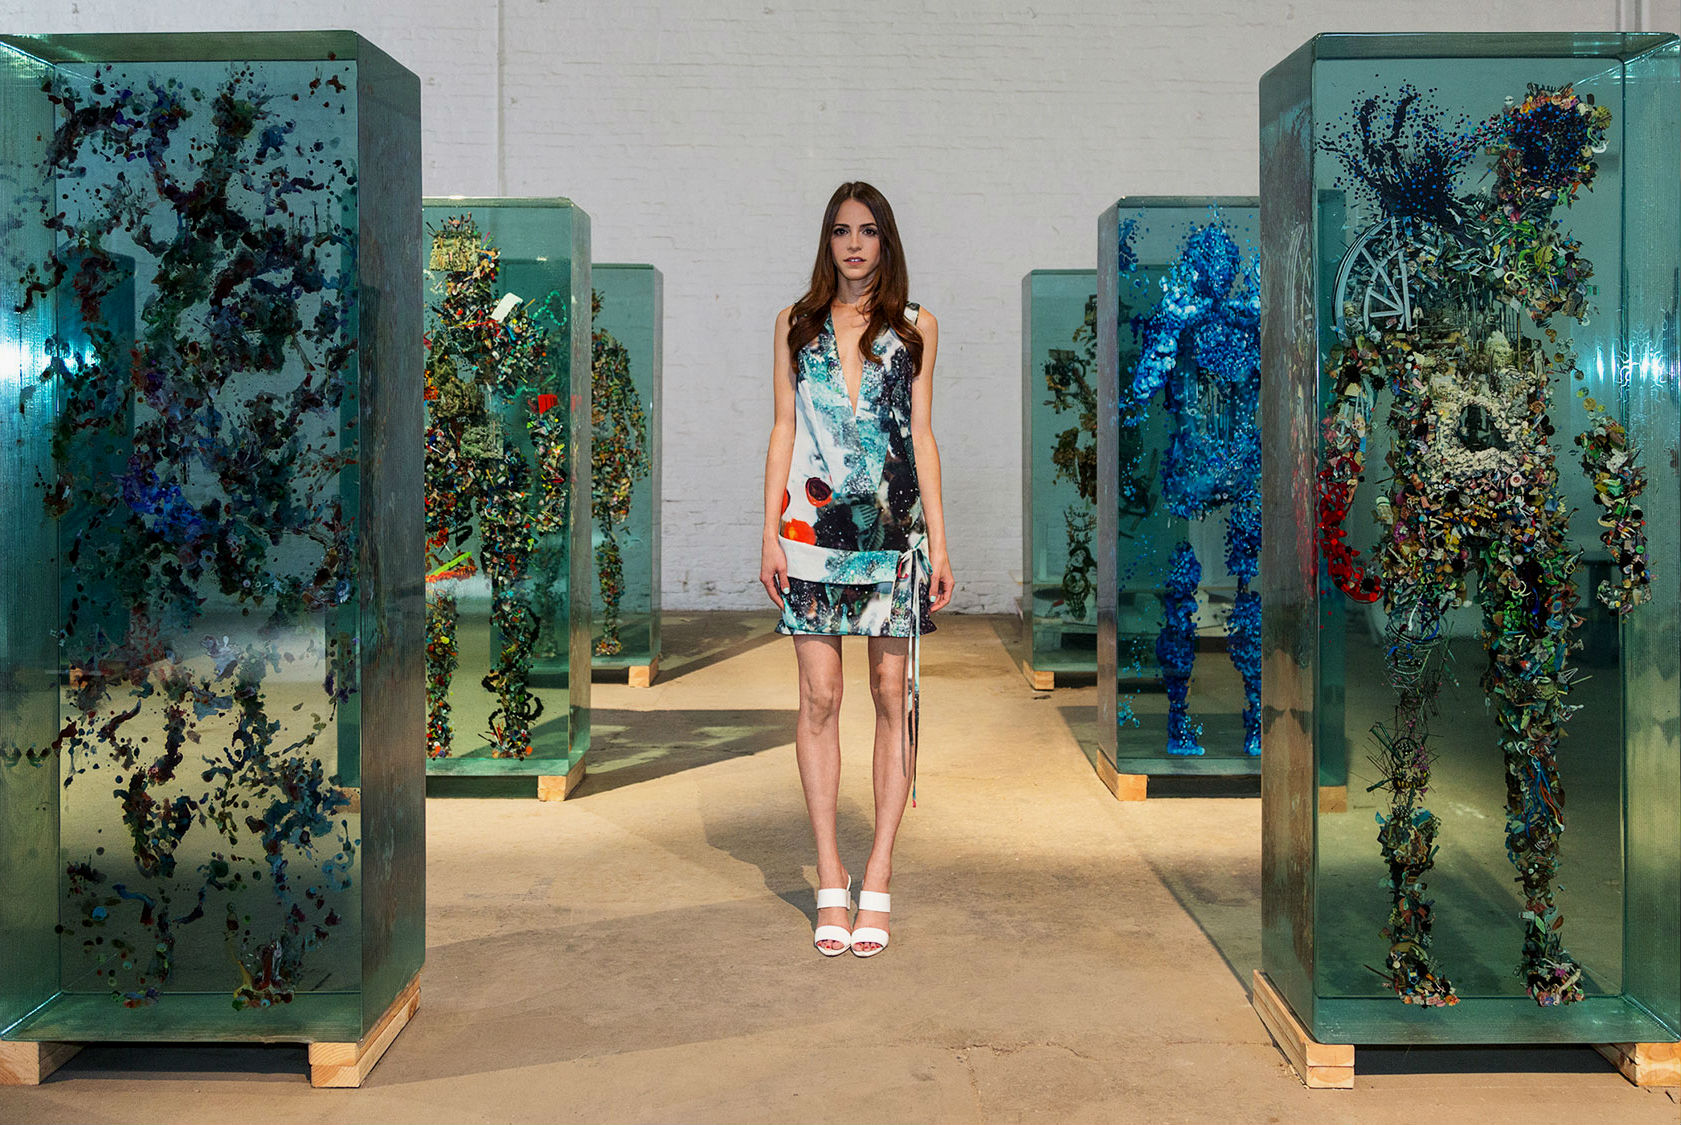 3D Collaged Figures Encased In Glass By Dustin Yellin 1